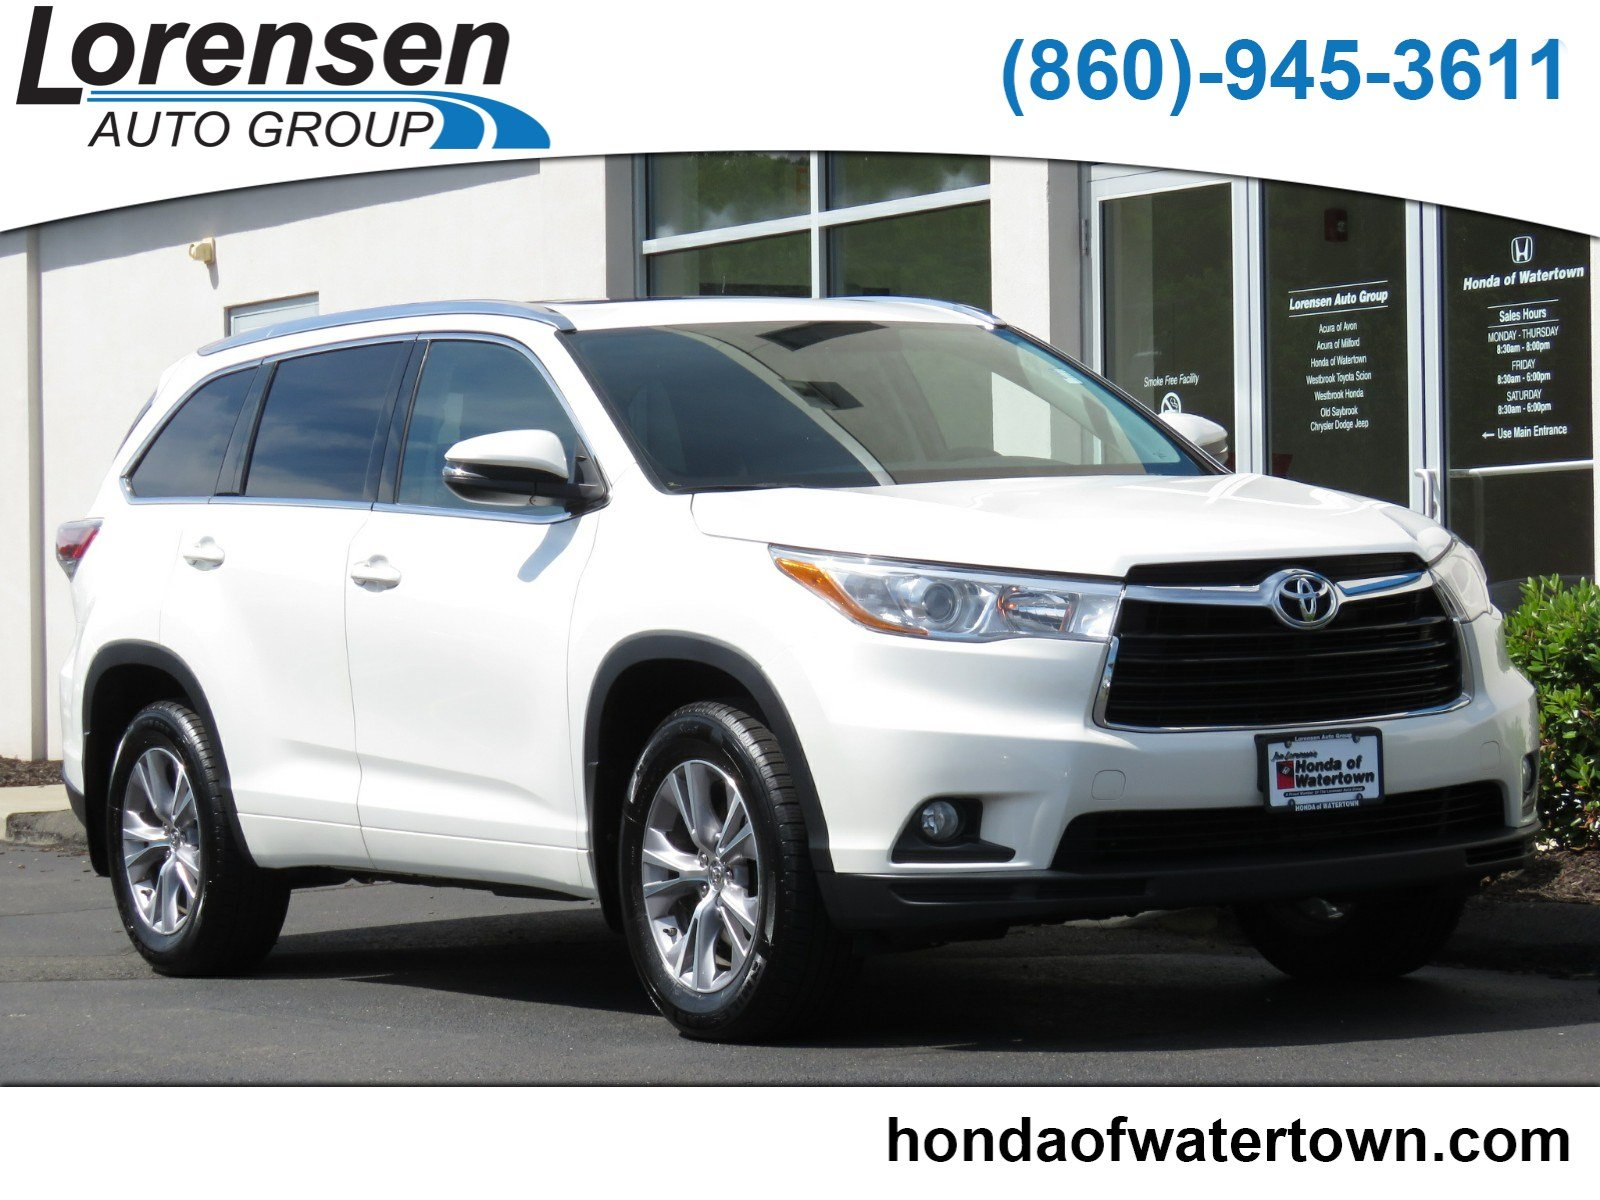 Toyota Highlander Owners Manual: Engine oil consumption